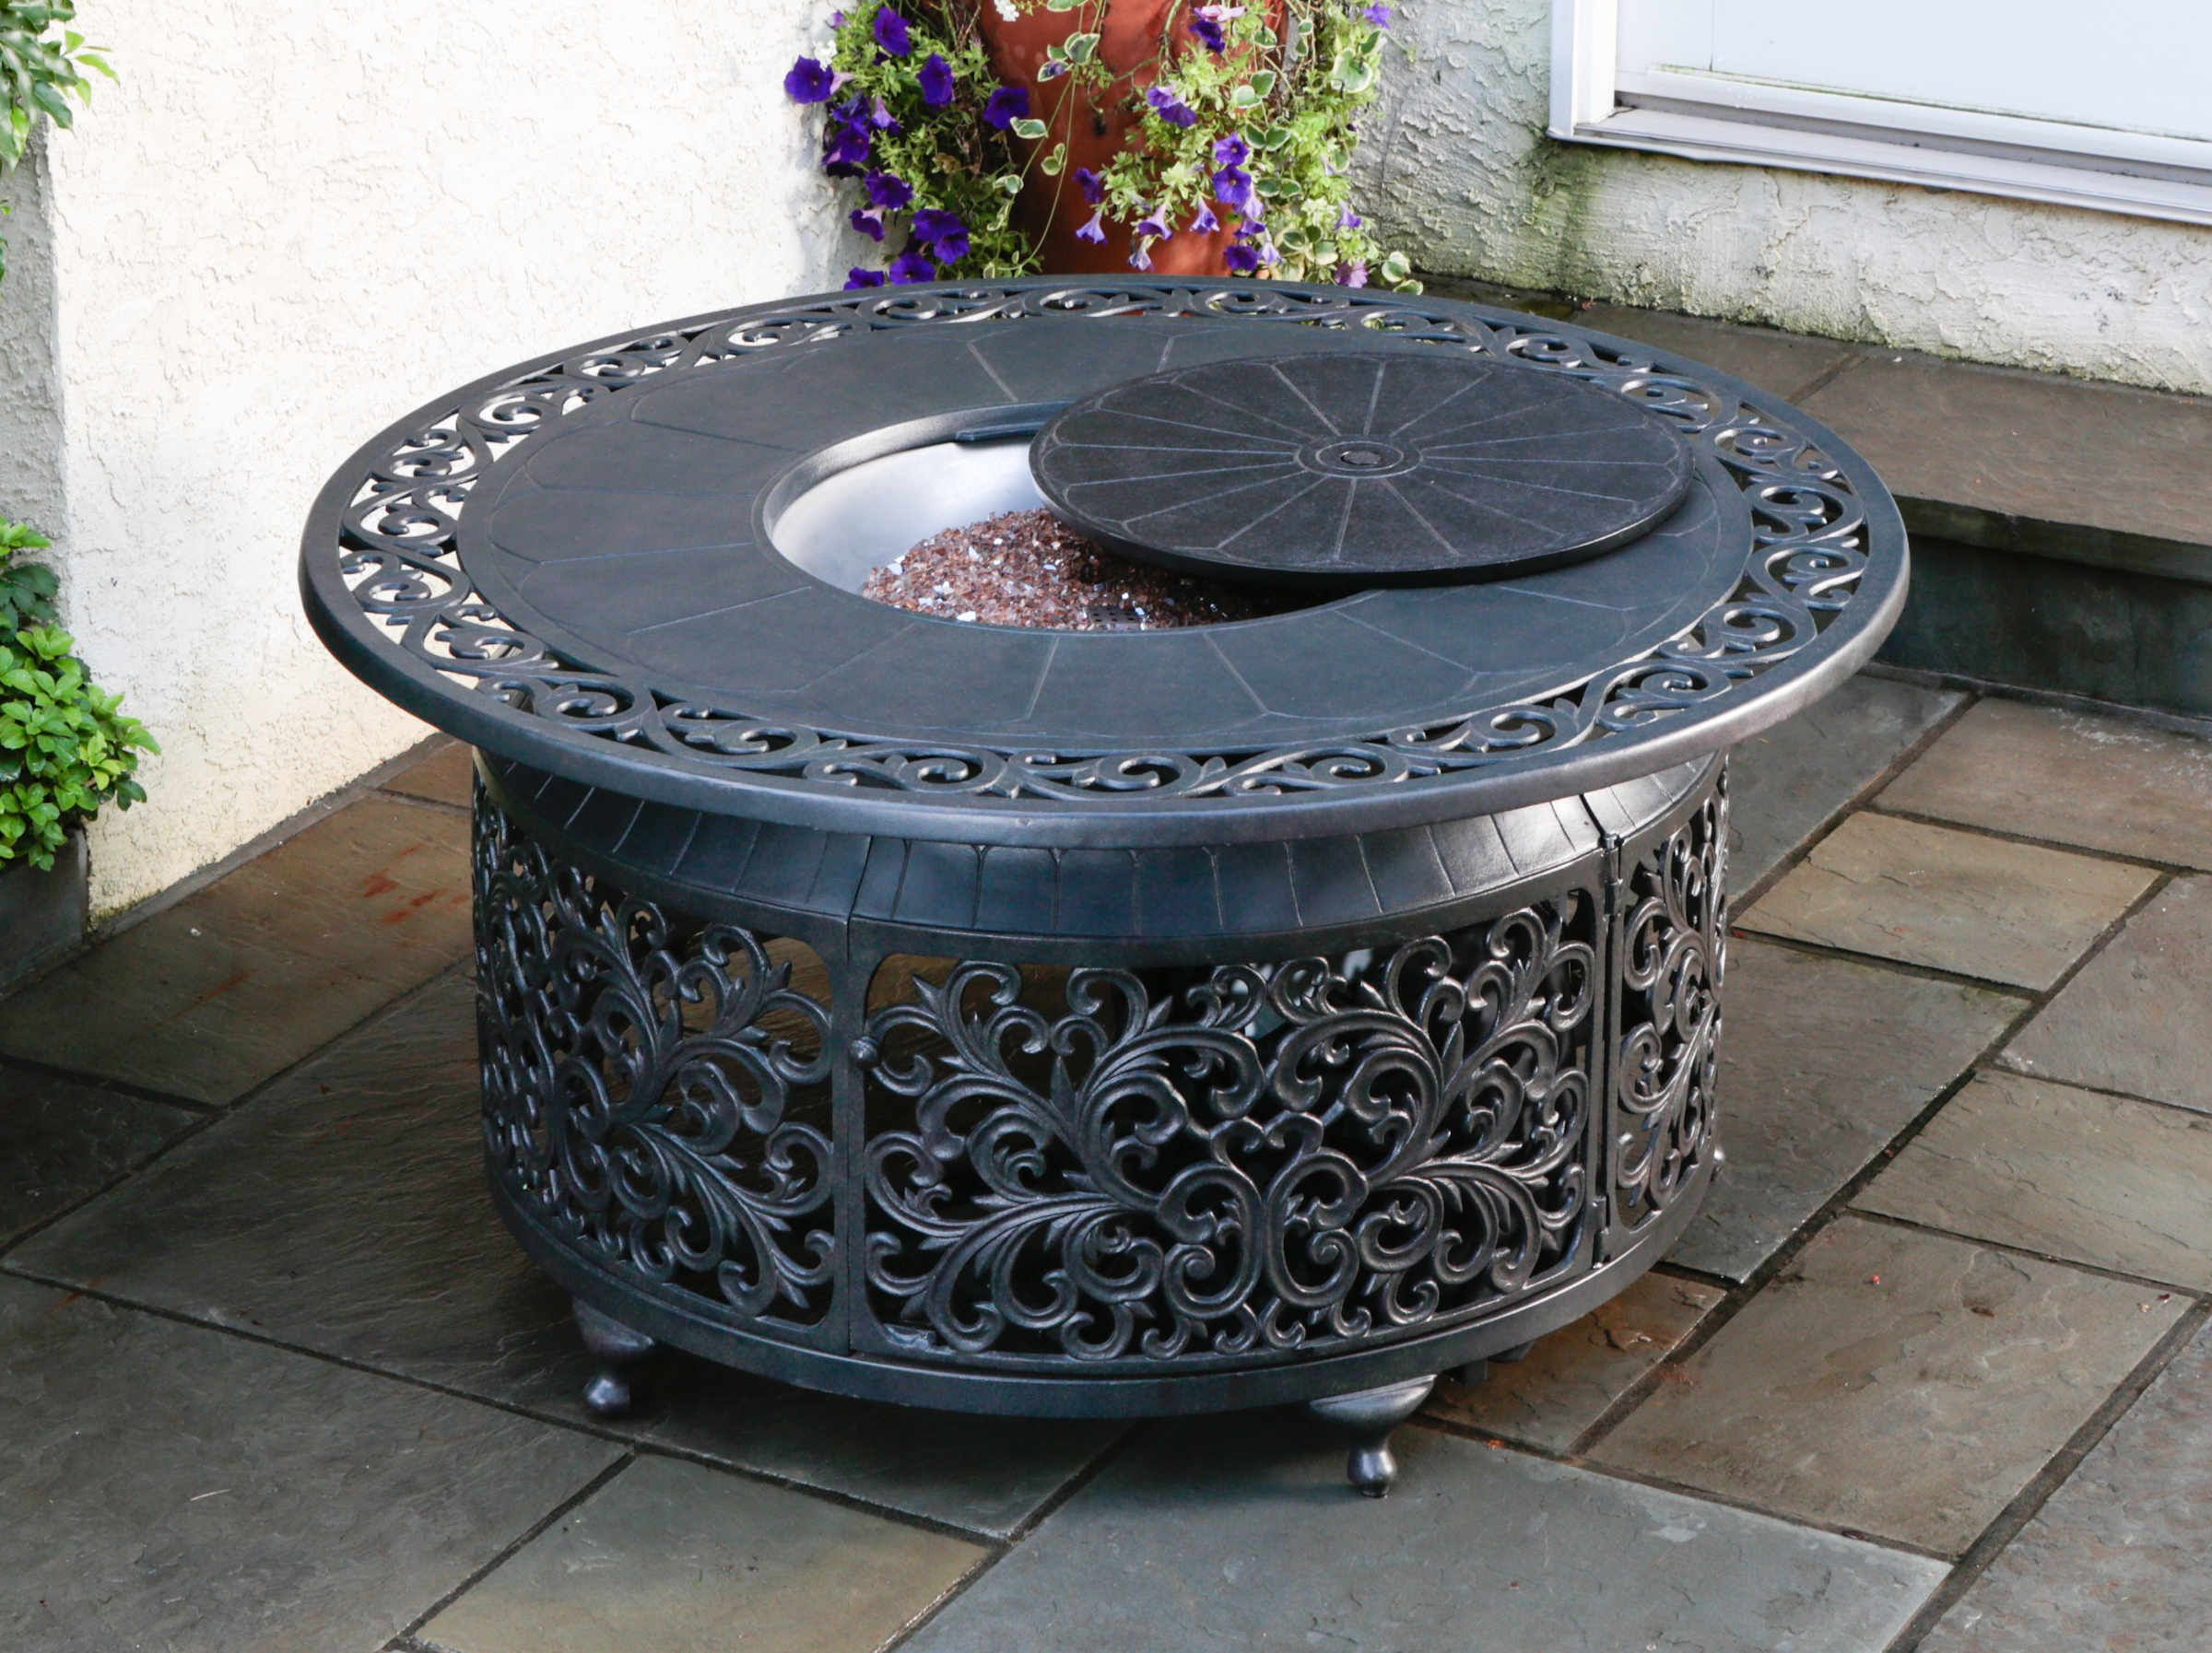 this fire pit is powered by a propane tank that is hidden in the base